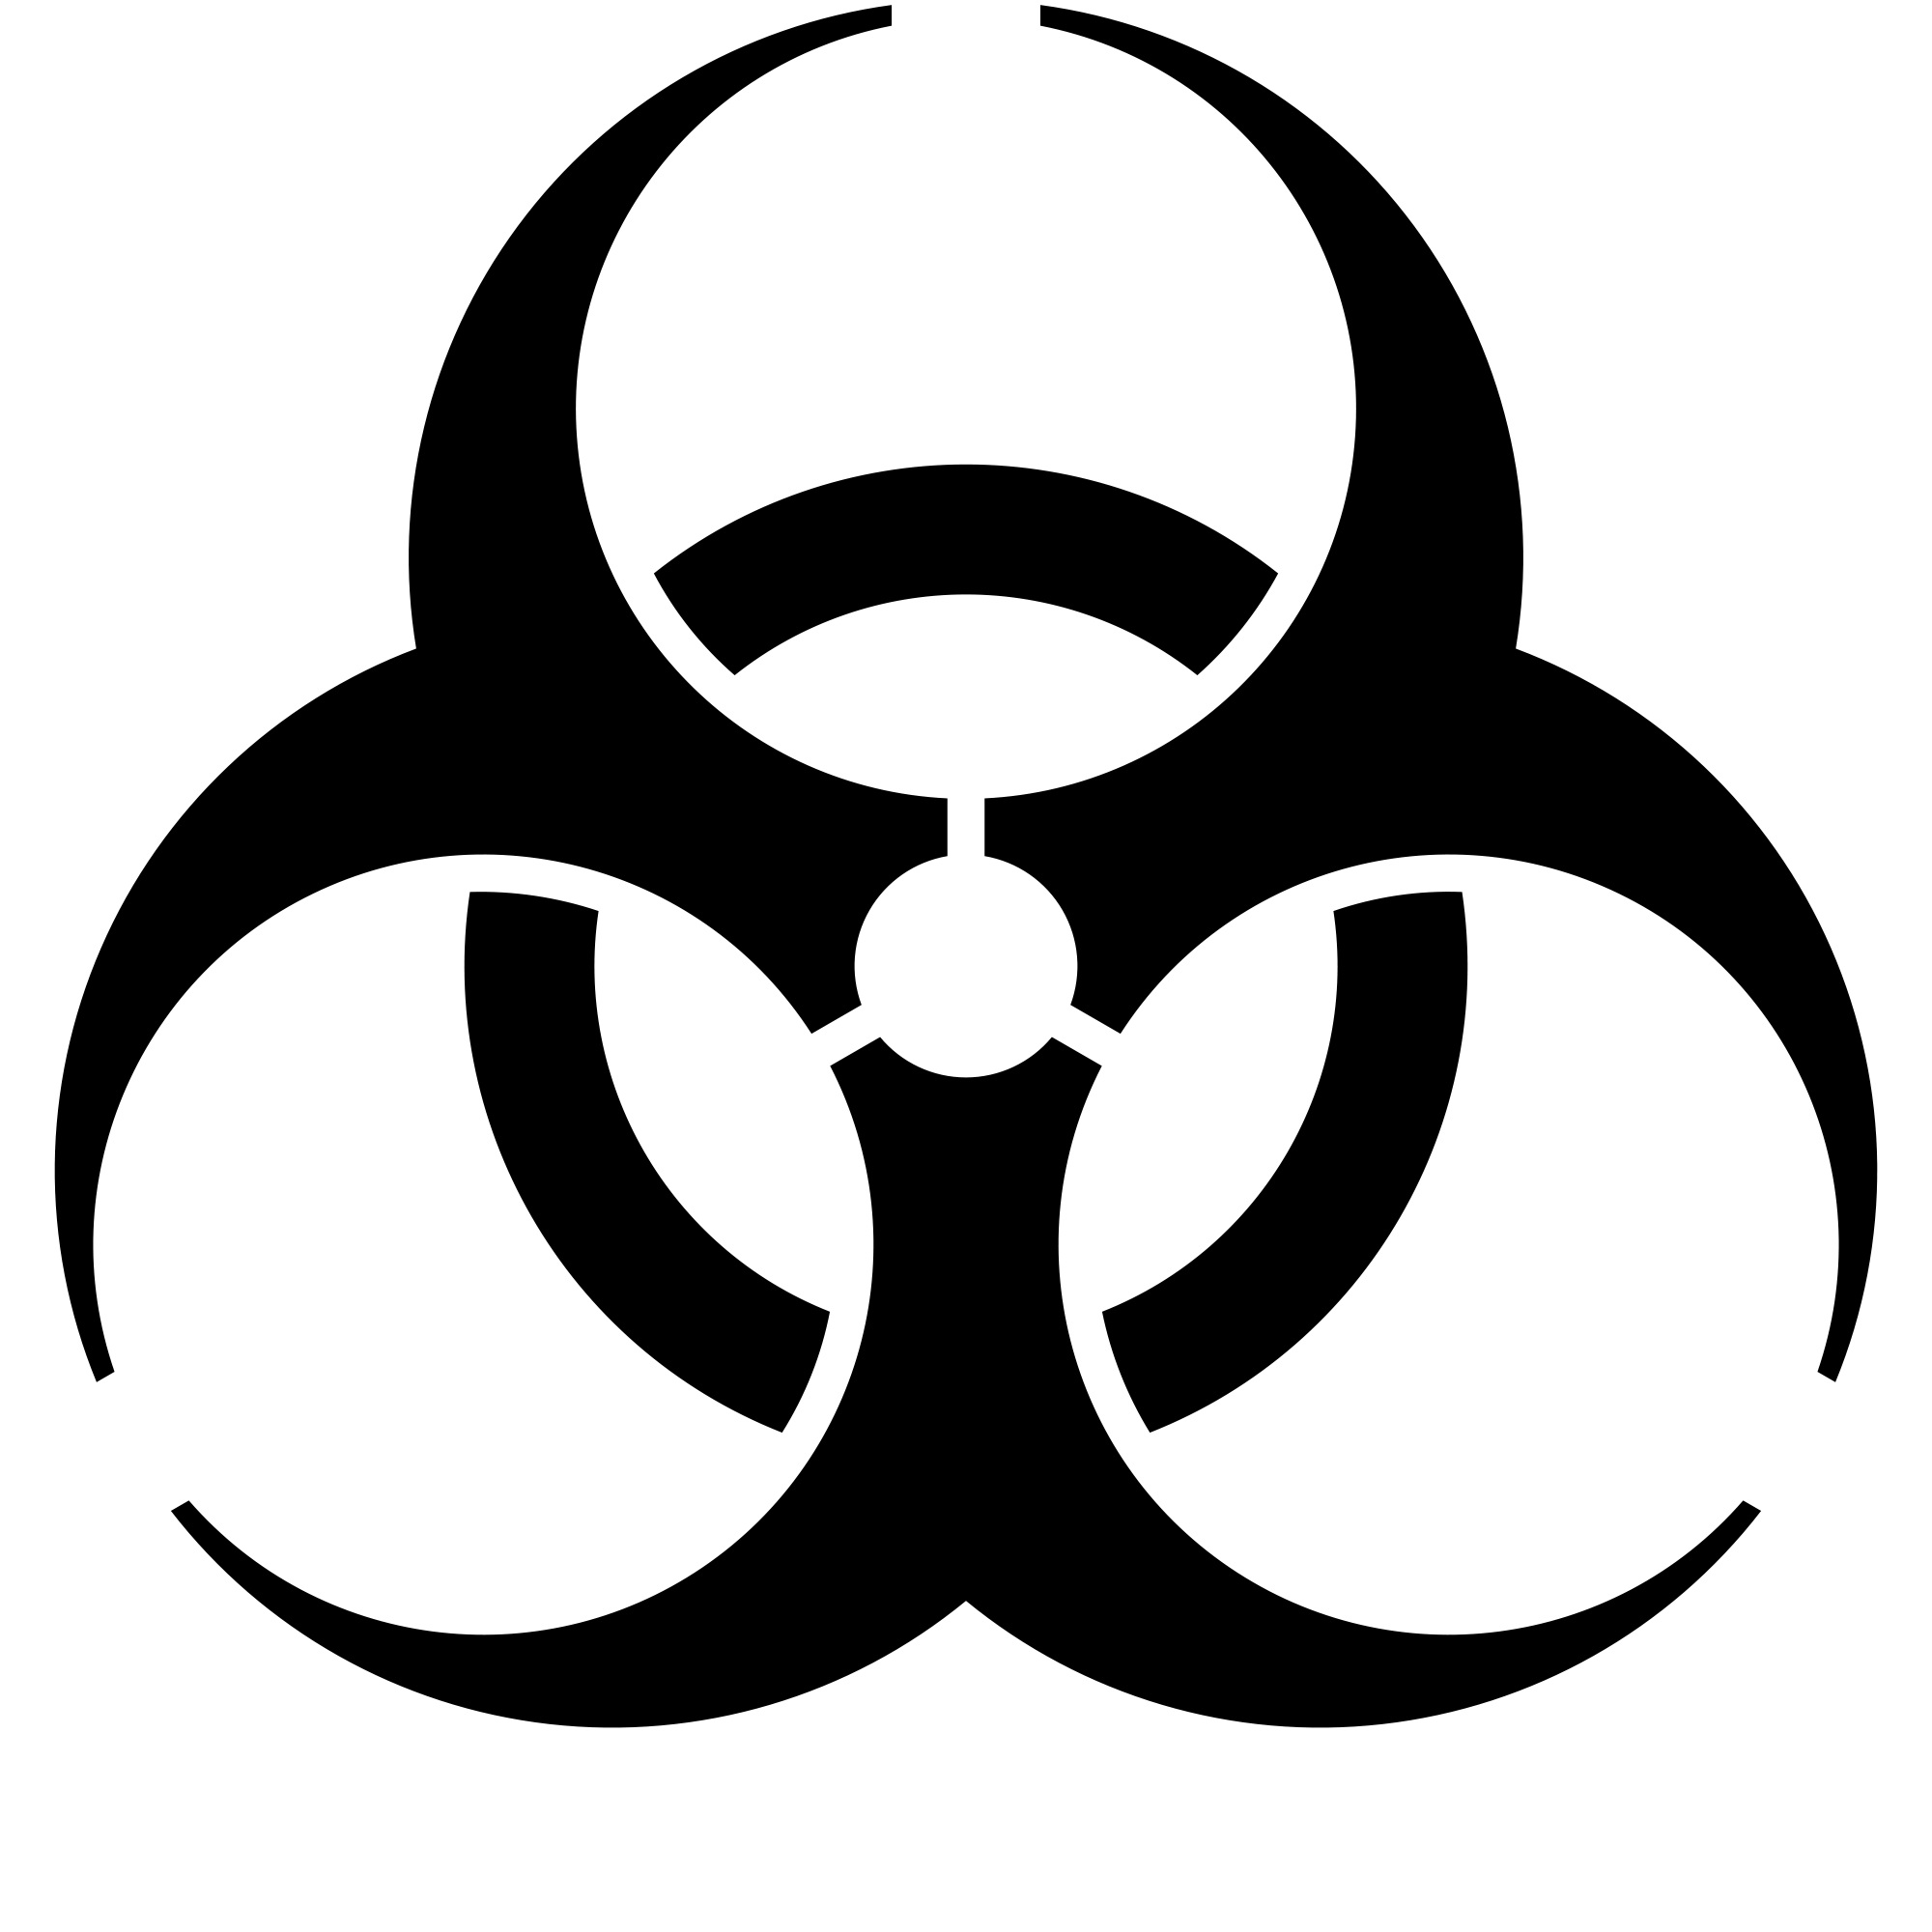 Attractive 31   Epidemics And Pandemics!! (August 31, 2014)